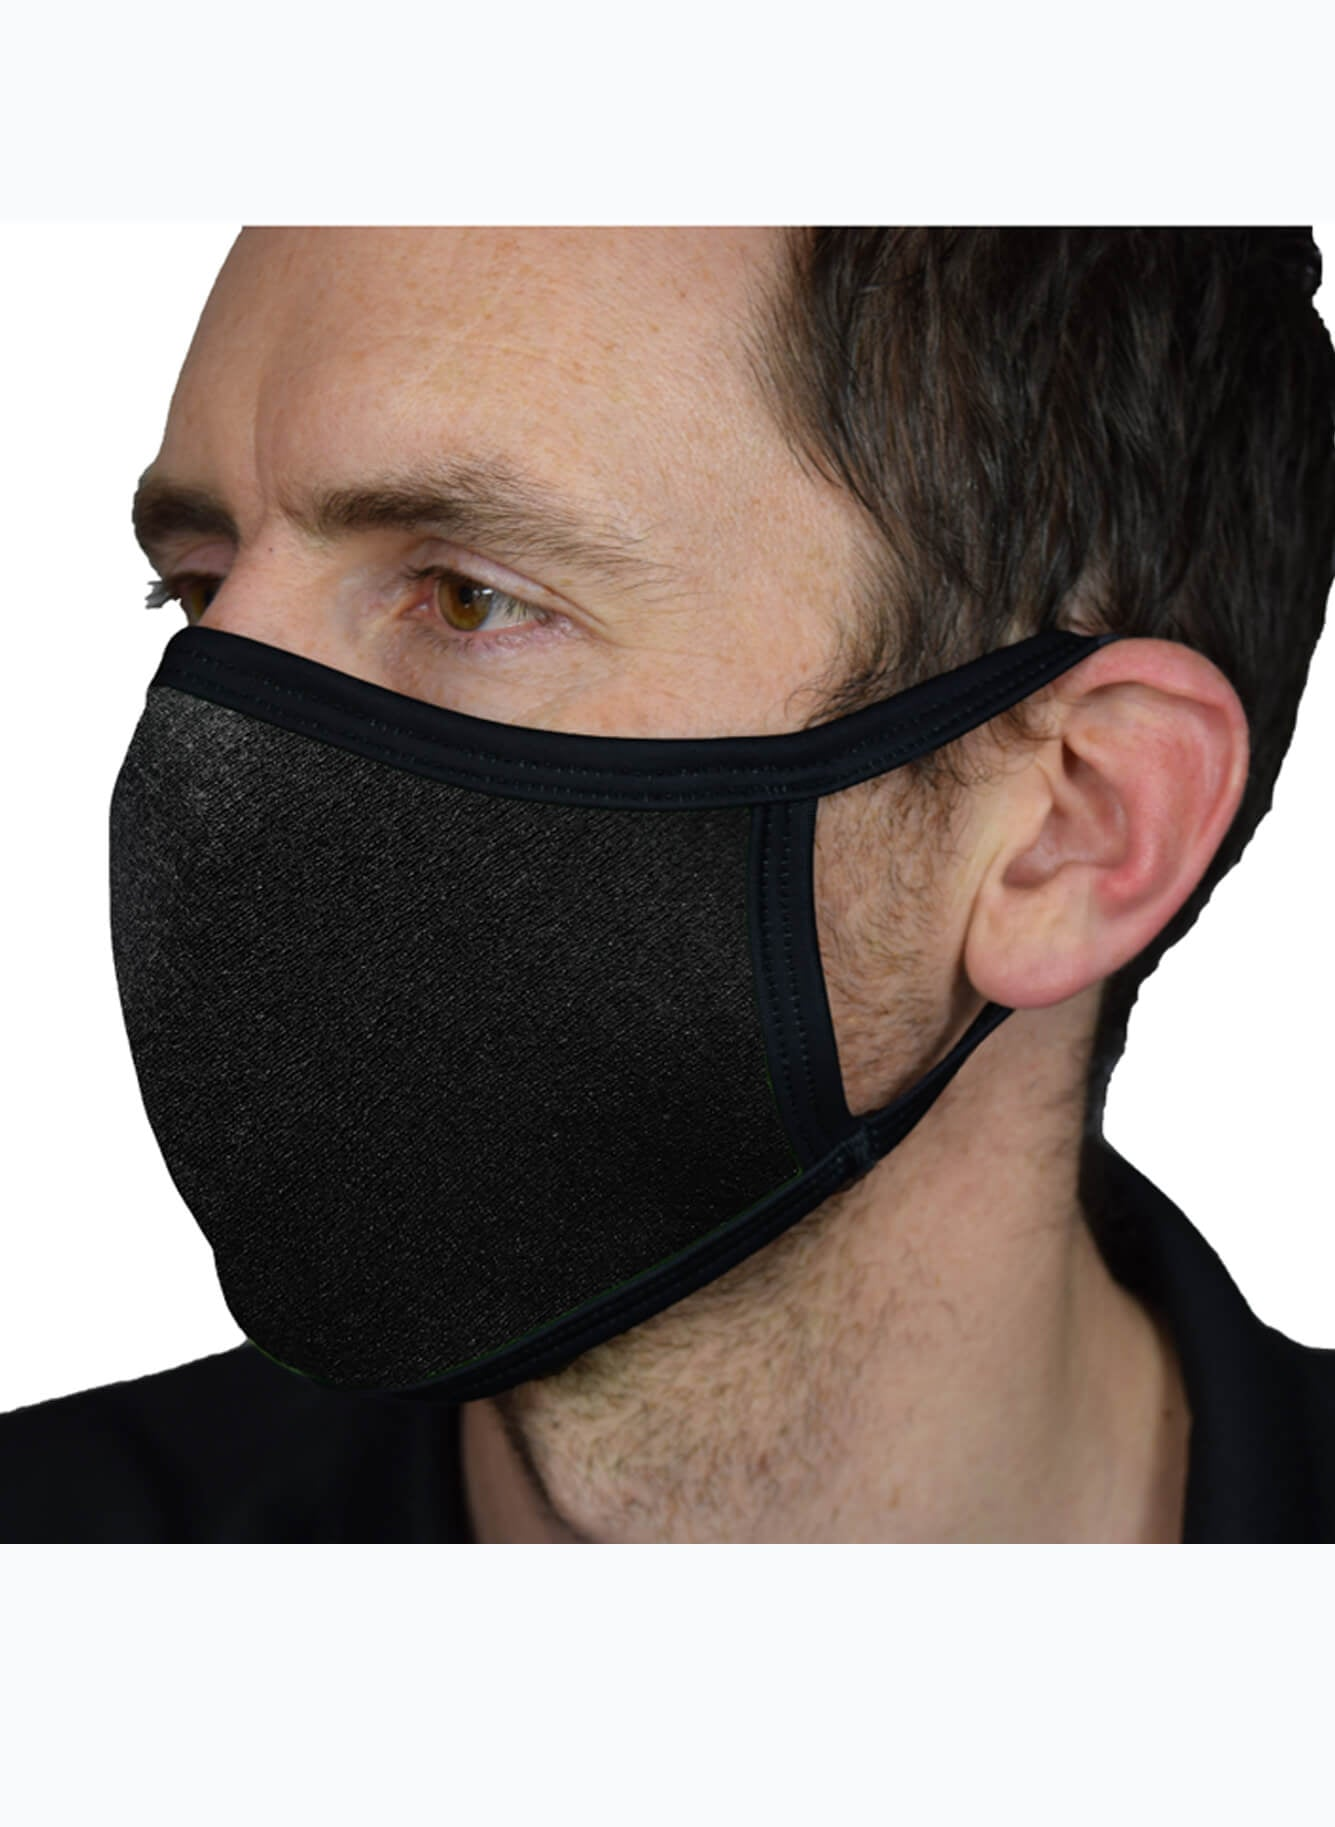 Consumer tech face mask